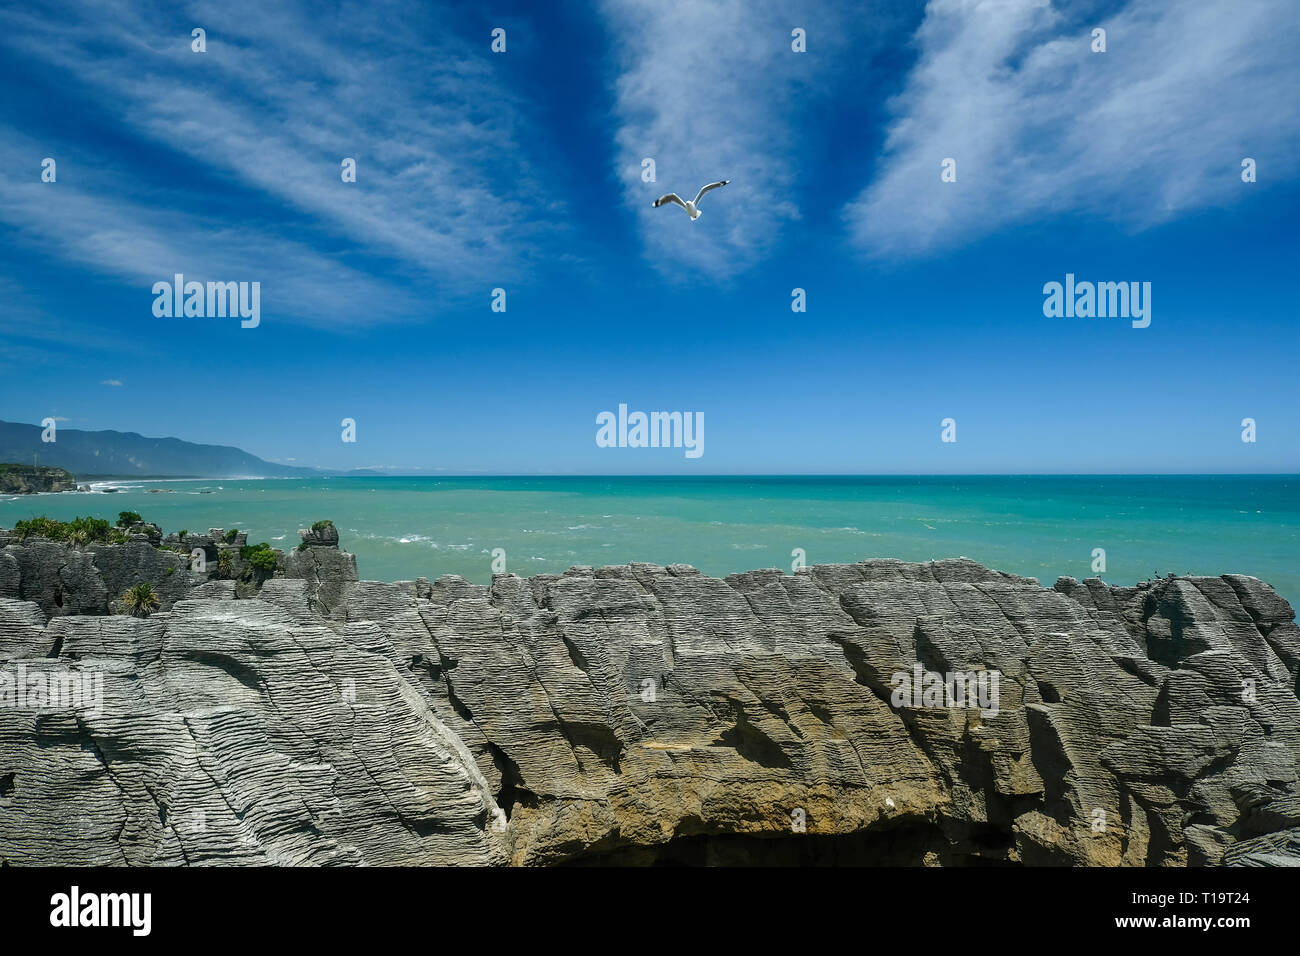 The remarkable westcoast and its Pancake Rocks. Formed by eternity of waves and once will be washed away by the ocean. Superb scenery in New Zealand. - Stock Image